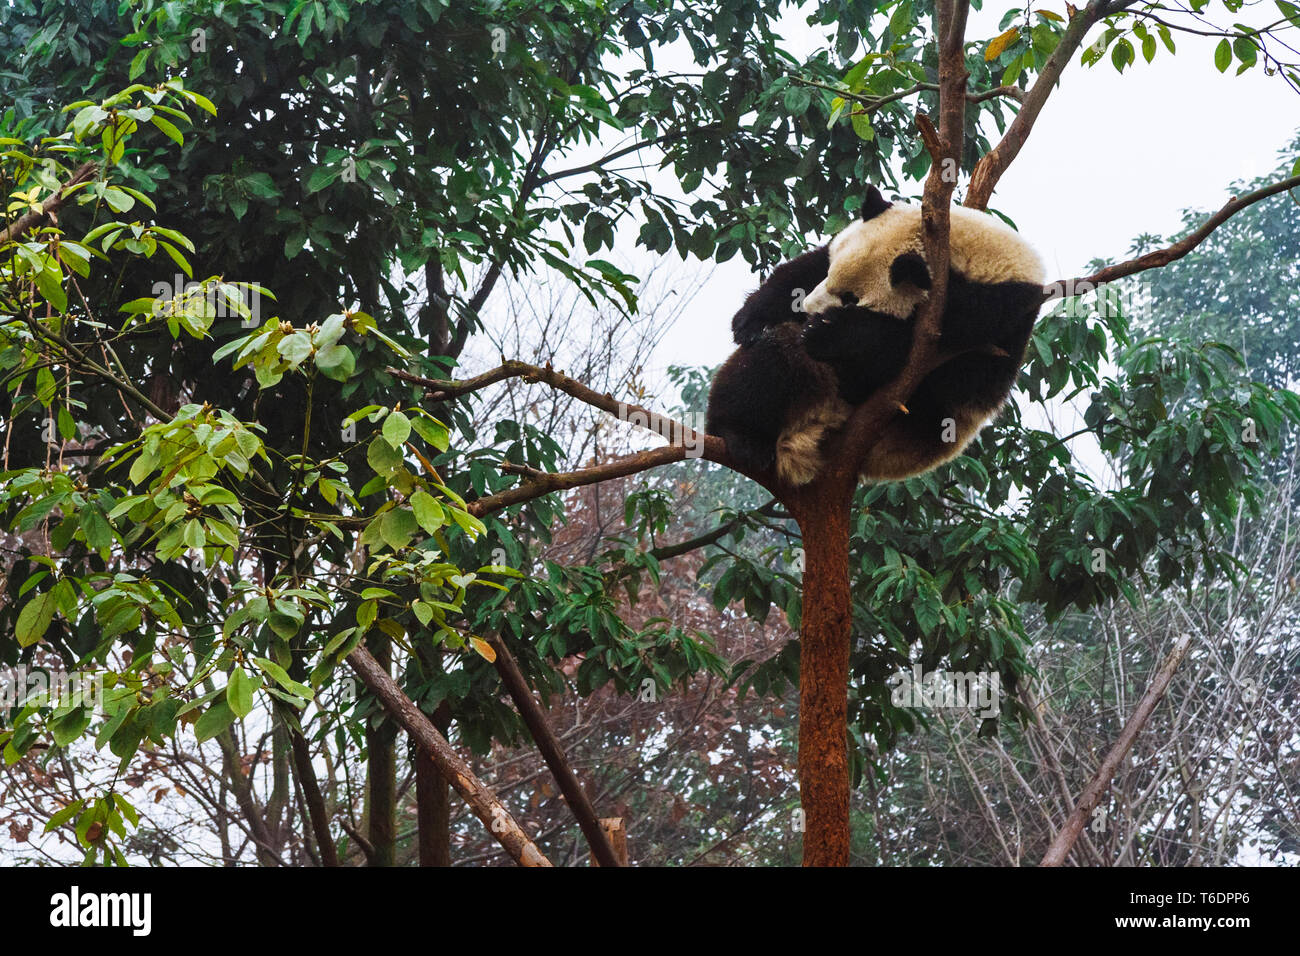 Chengdu, Sichuan province, China : A Giant Panda bear sleaps on top of a tree at the Chengdu Research Base of Giant Panda Breeding. - Stock Image